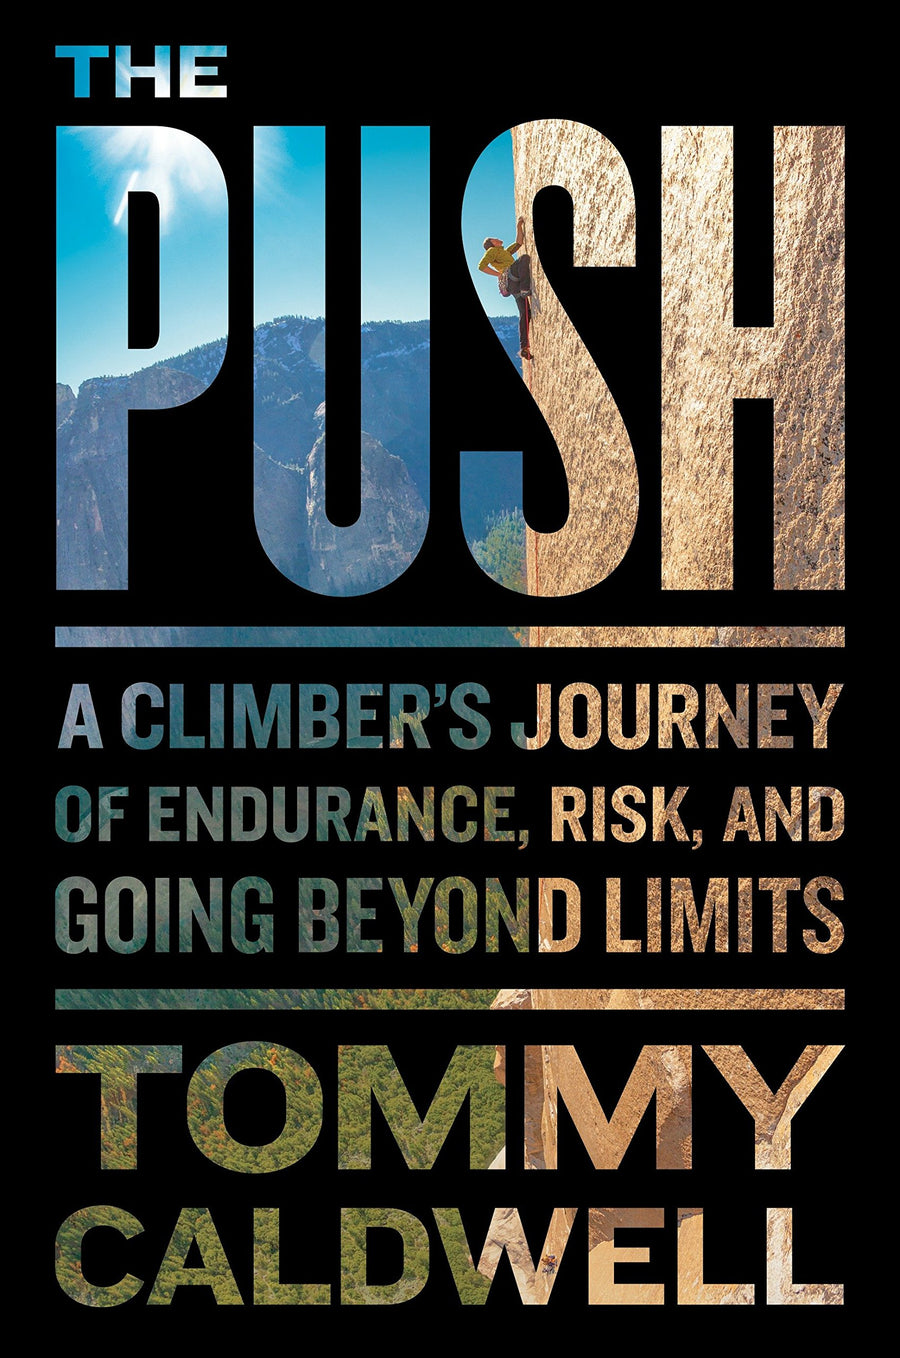 The Push: A Climber's Journey of Endurance, Risk, and Going Beyond Limits by Tommy Caldwell